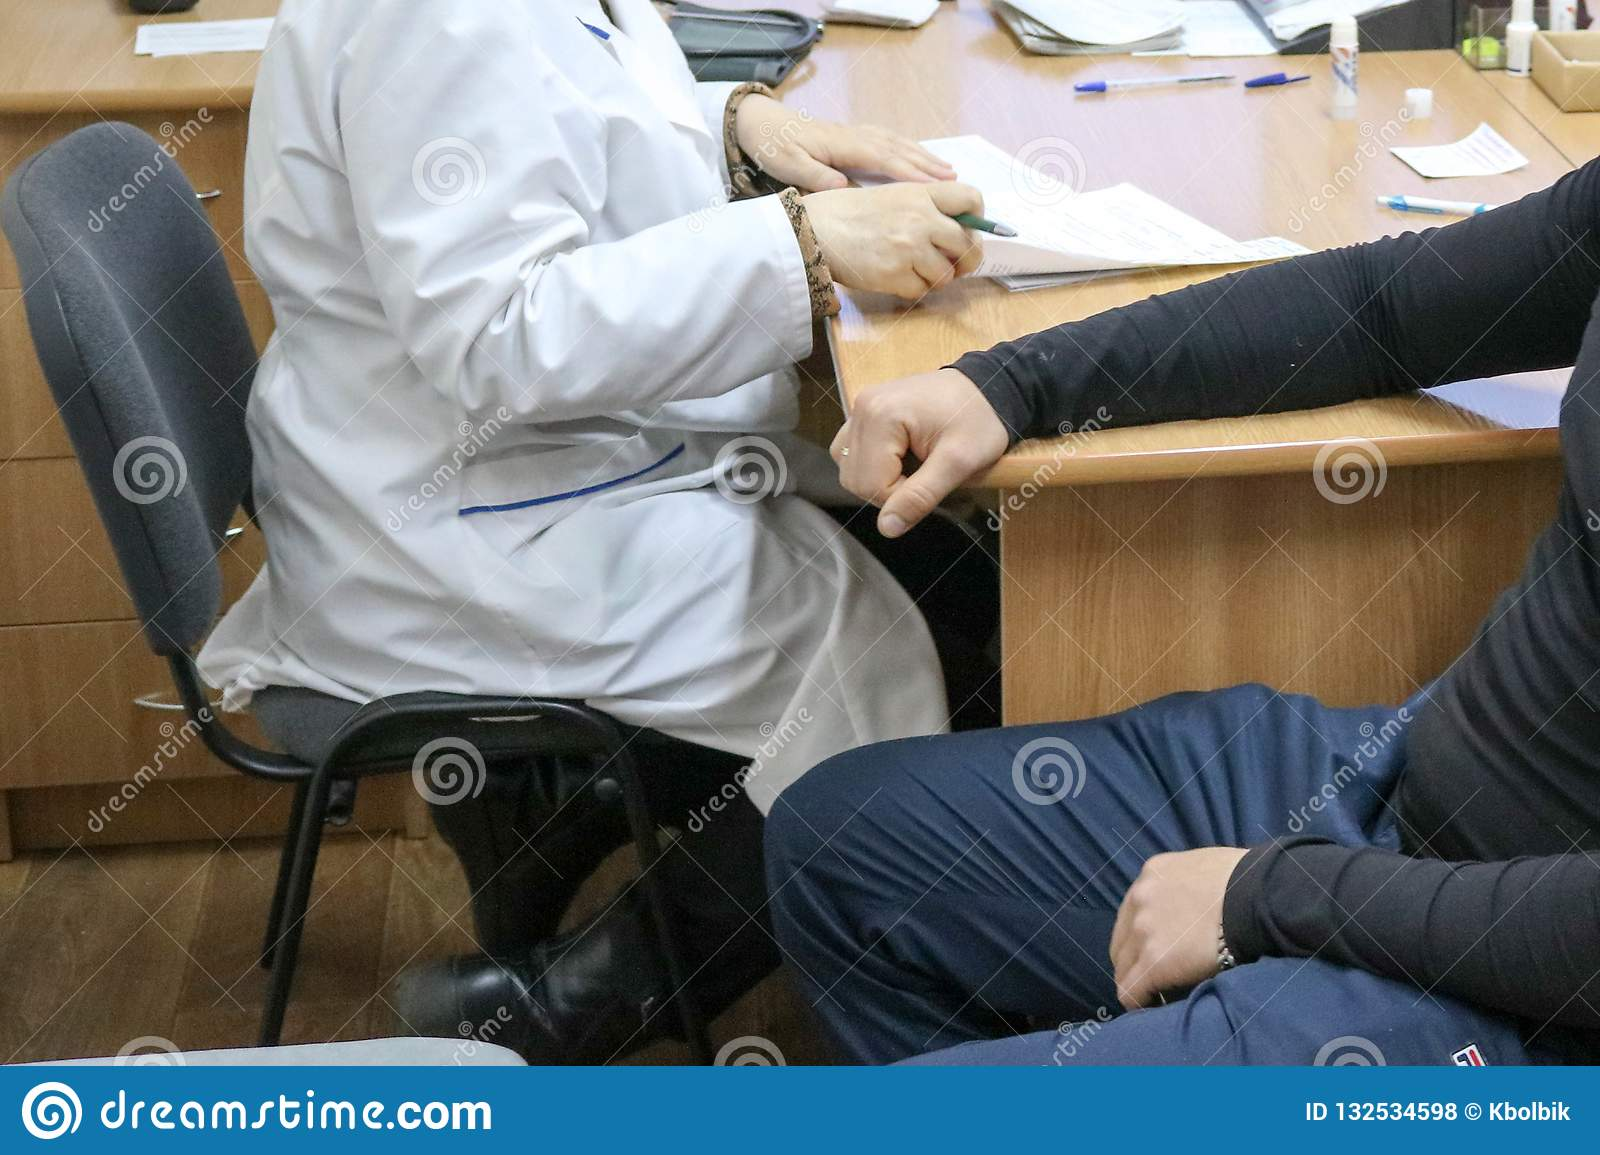 Doctor, medical worker in a white coat advises the patient of a sick man sitting on a chair in a medical institution